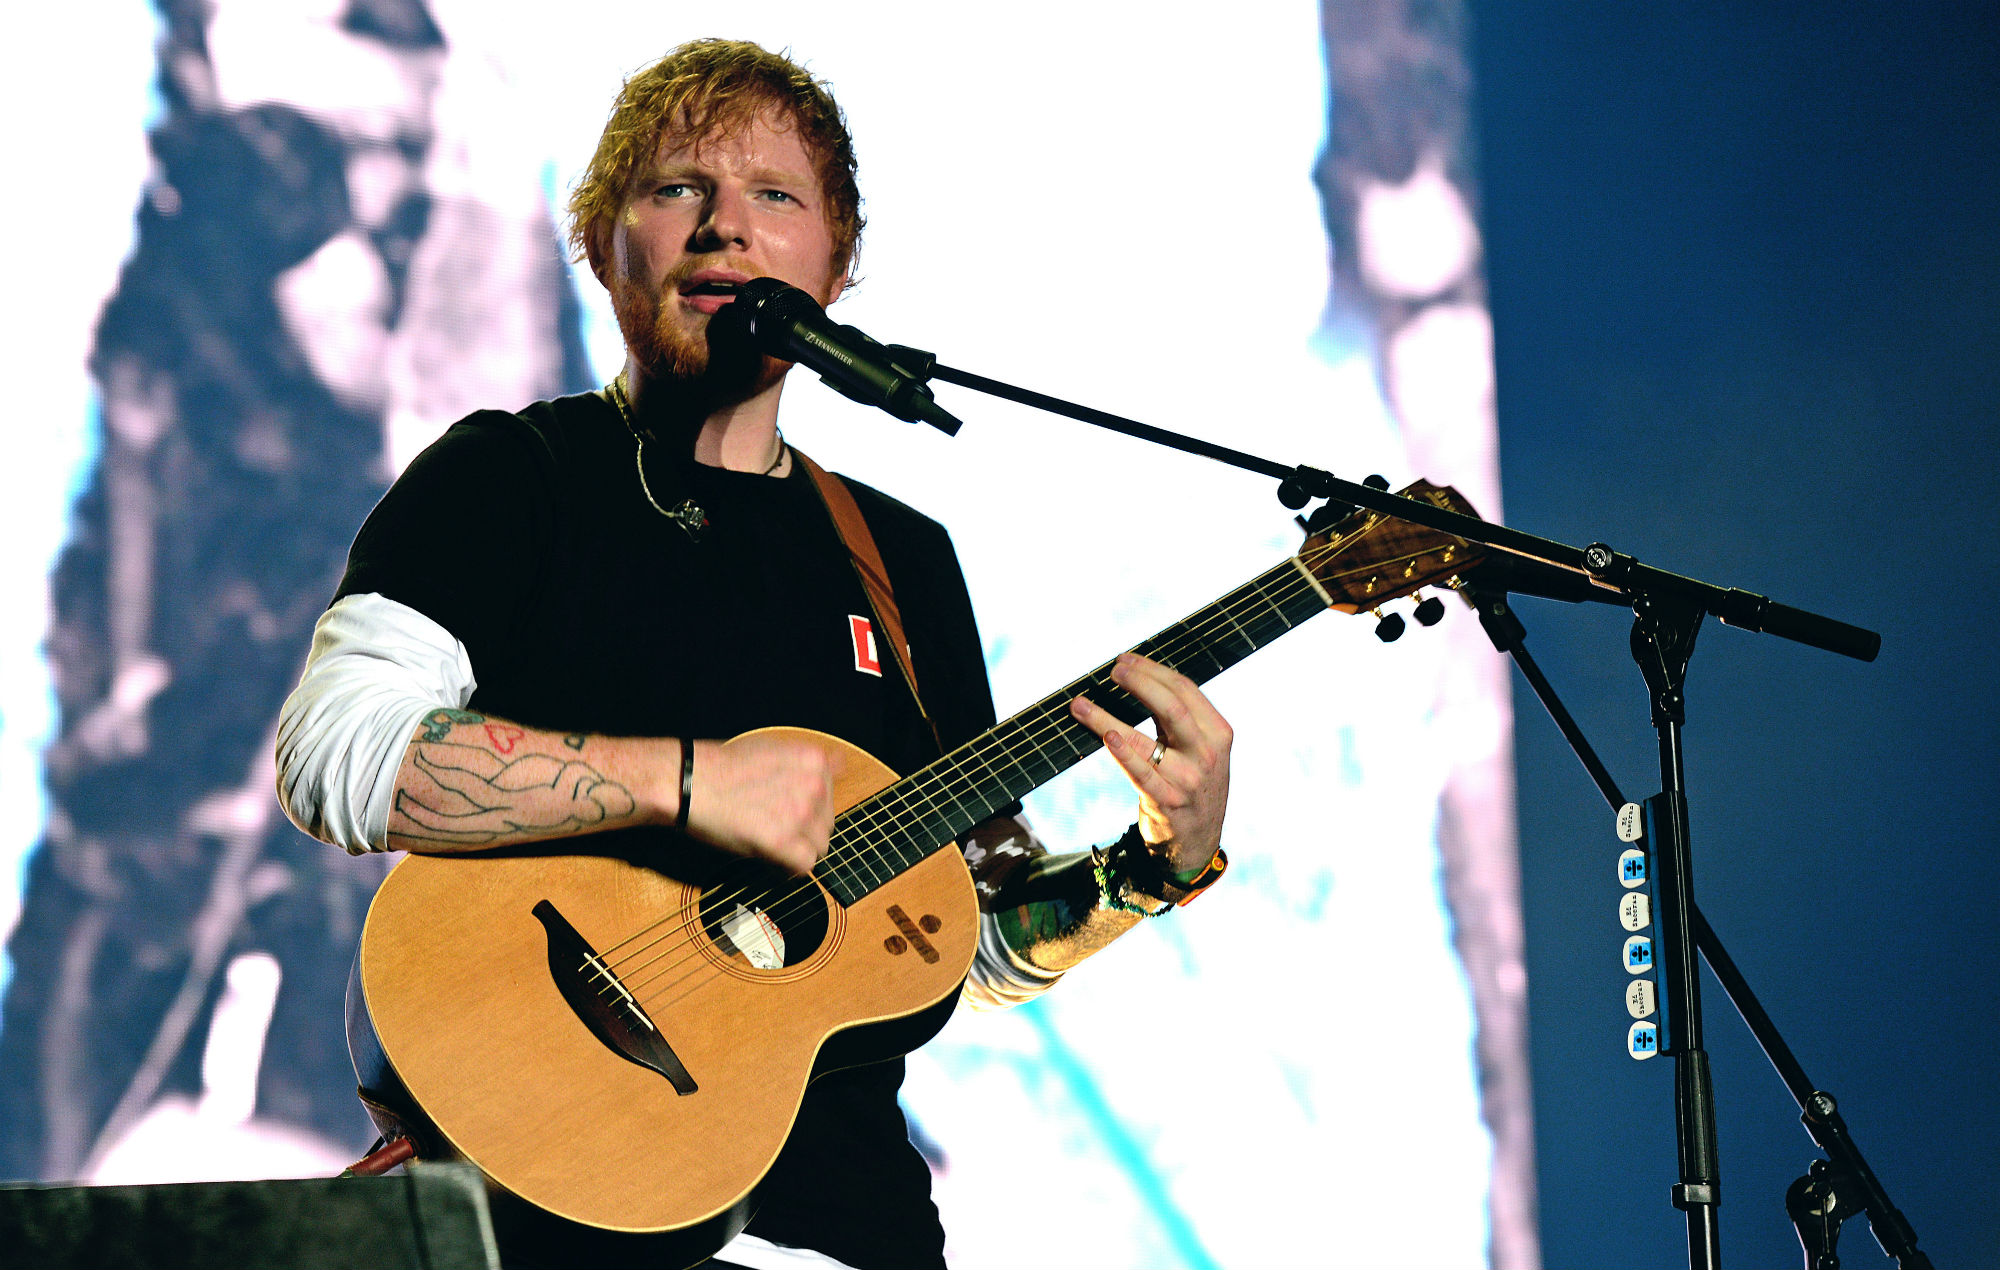 Ed Sheeran is the UK's richest celebrity under 30 after doubling fortune to £170 million